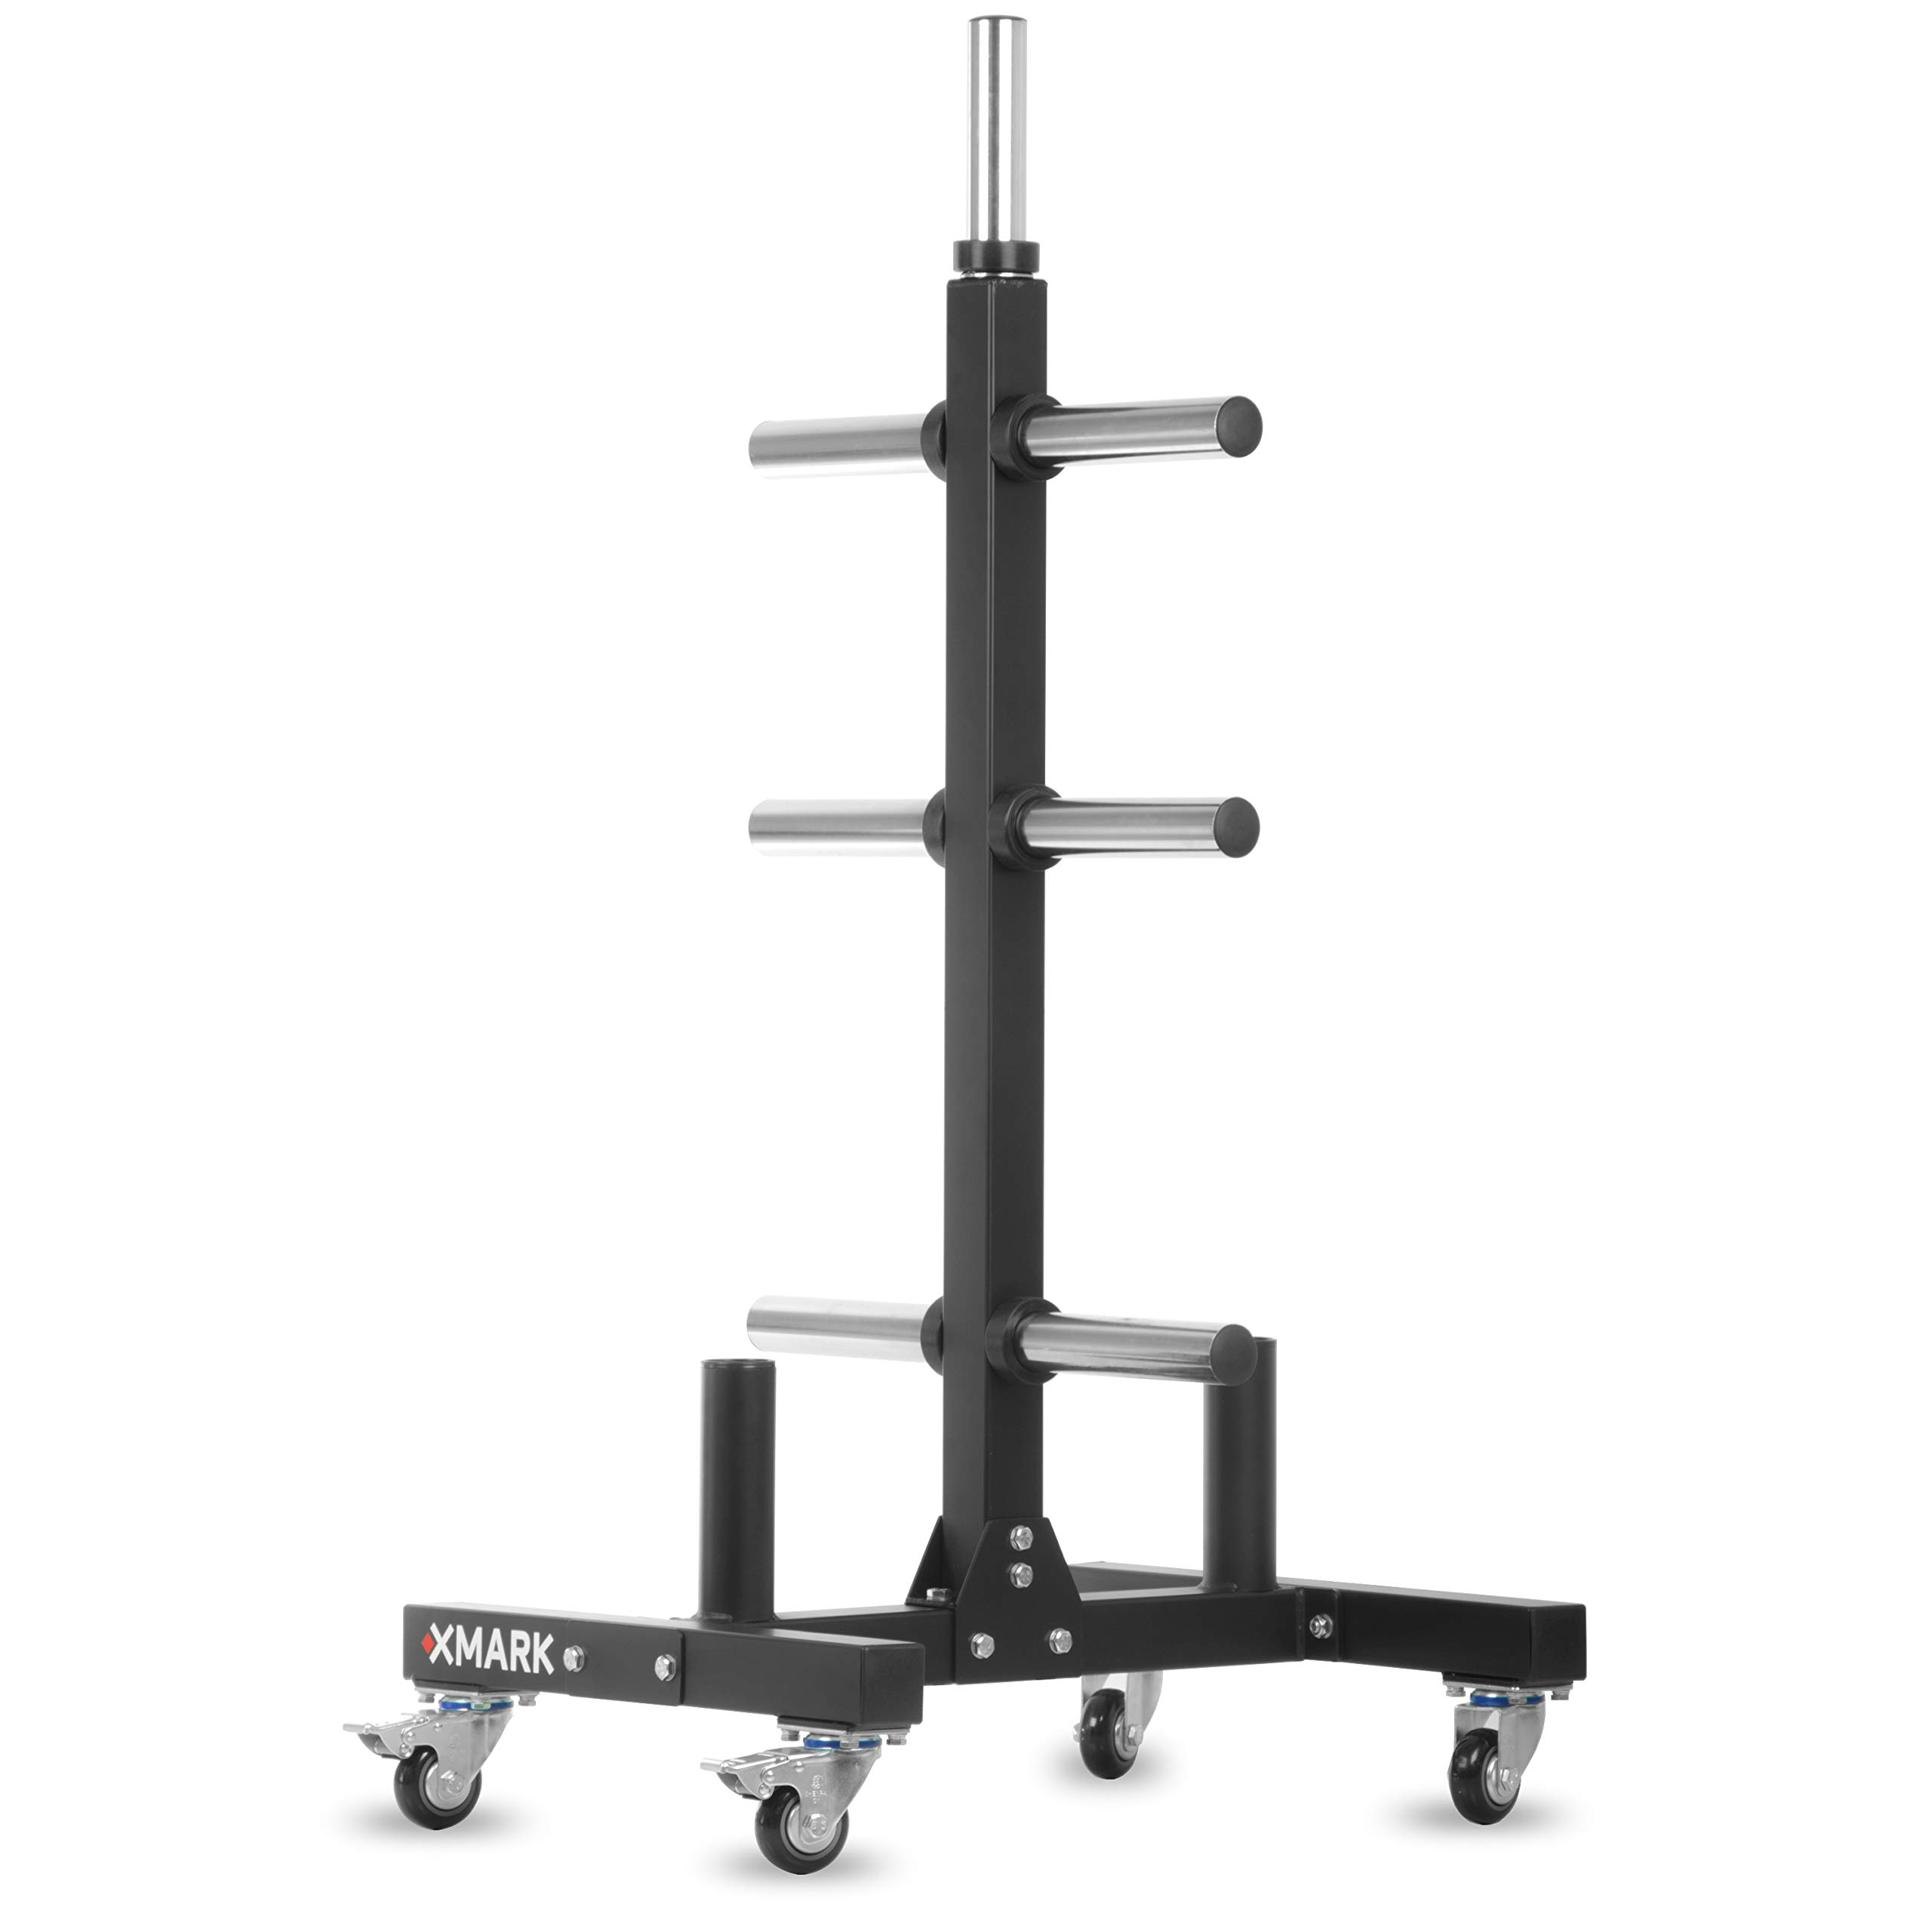 XMark Commercial Olympic Weight Plate Vertical Storage Tree, 750 lb Capacity, with Two Bar Holders and Transport Wheels by XMark